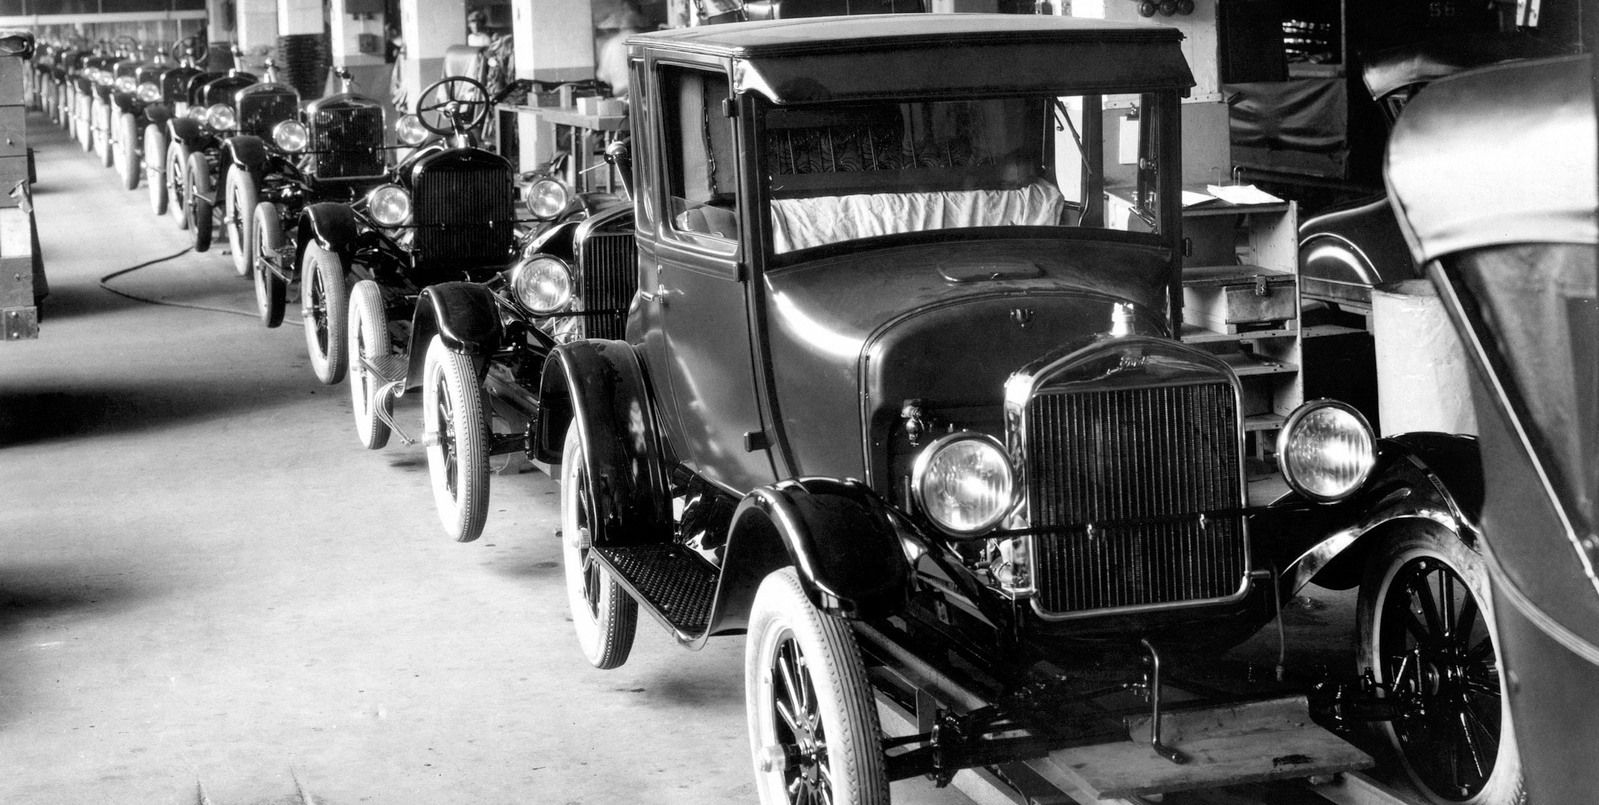 1929 Model T Production Line / Henry Ford was instrumental